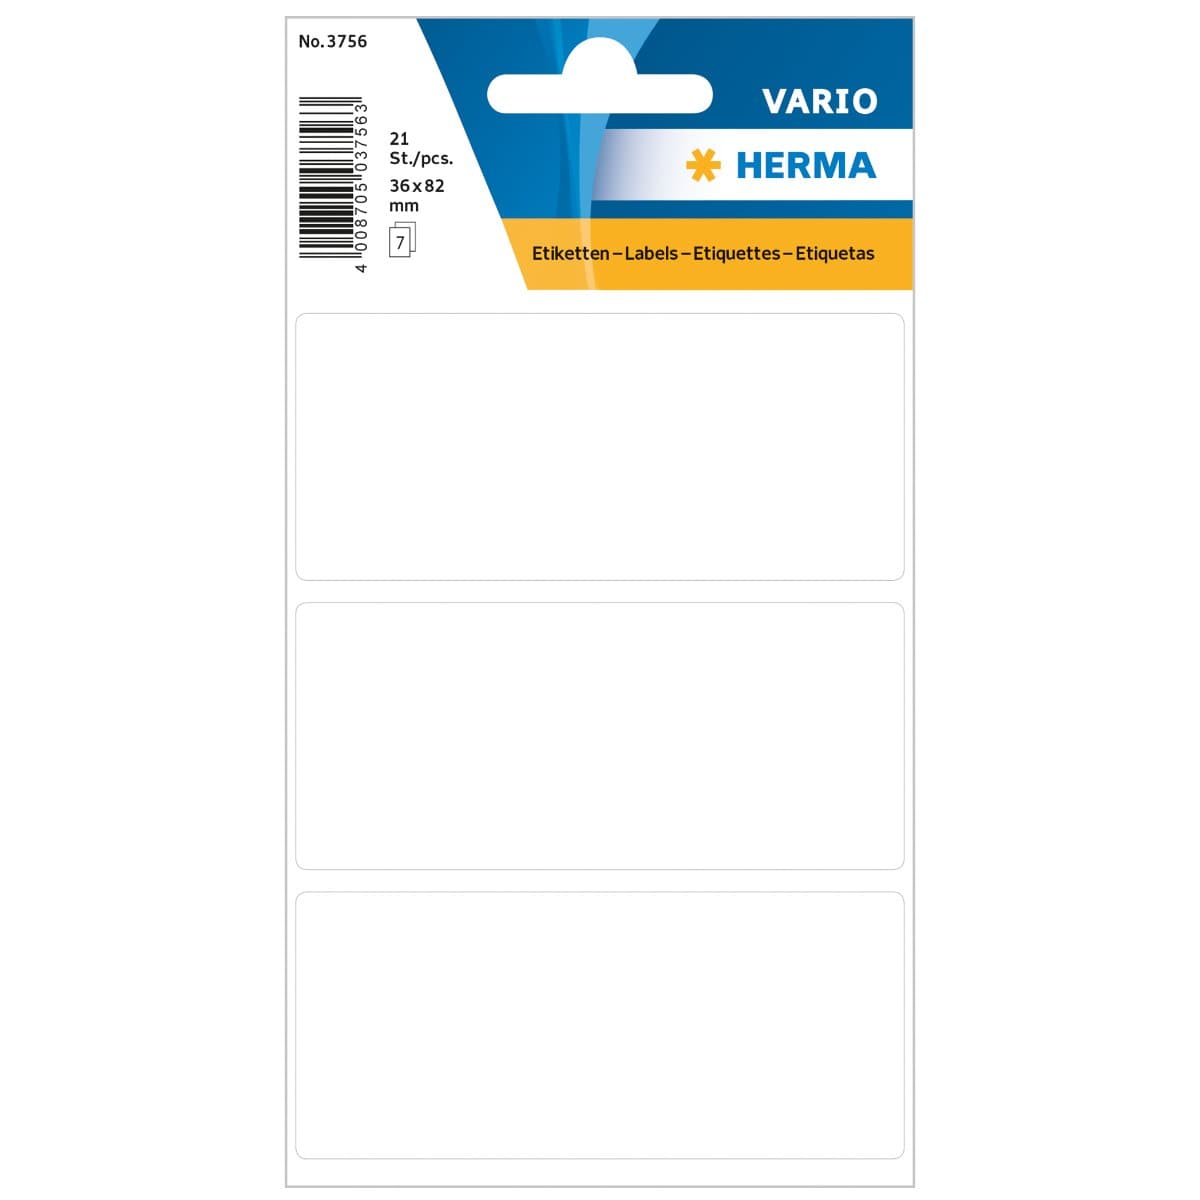 Herma Vario Sticker Labels, 36 x 82 mm, 21/pack, White